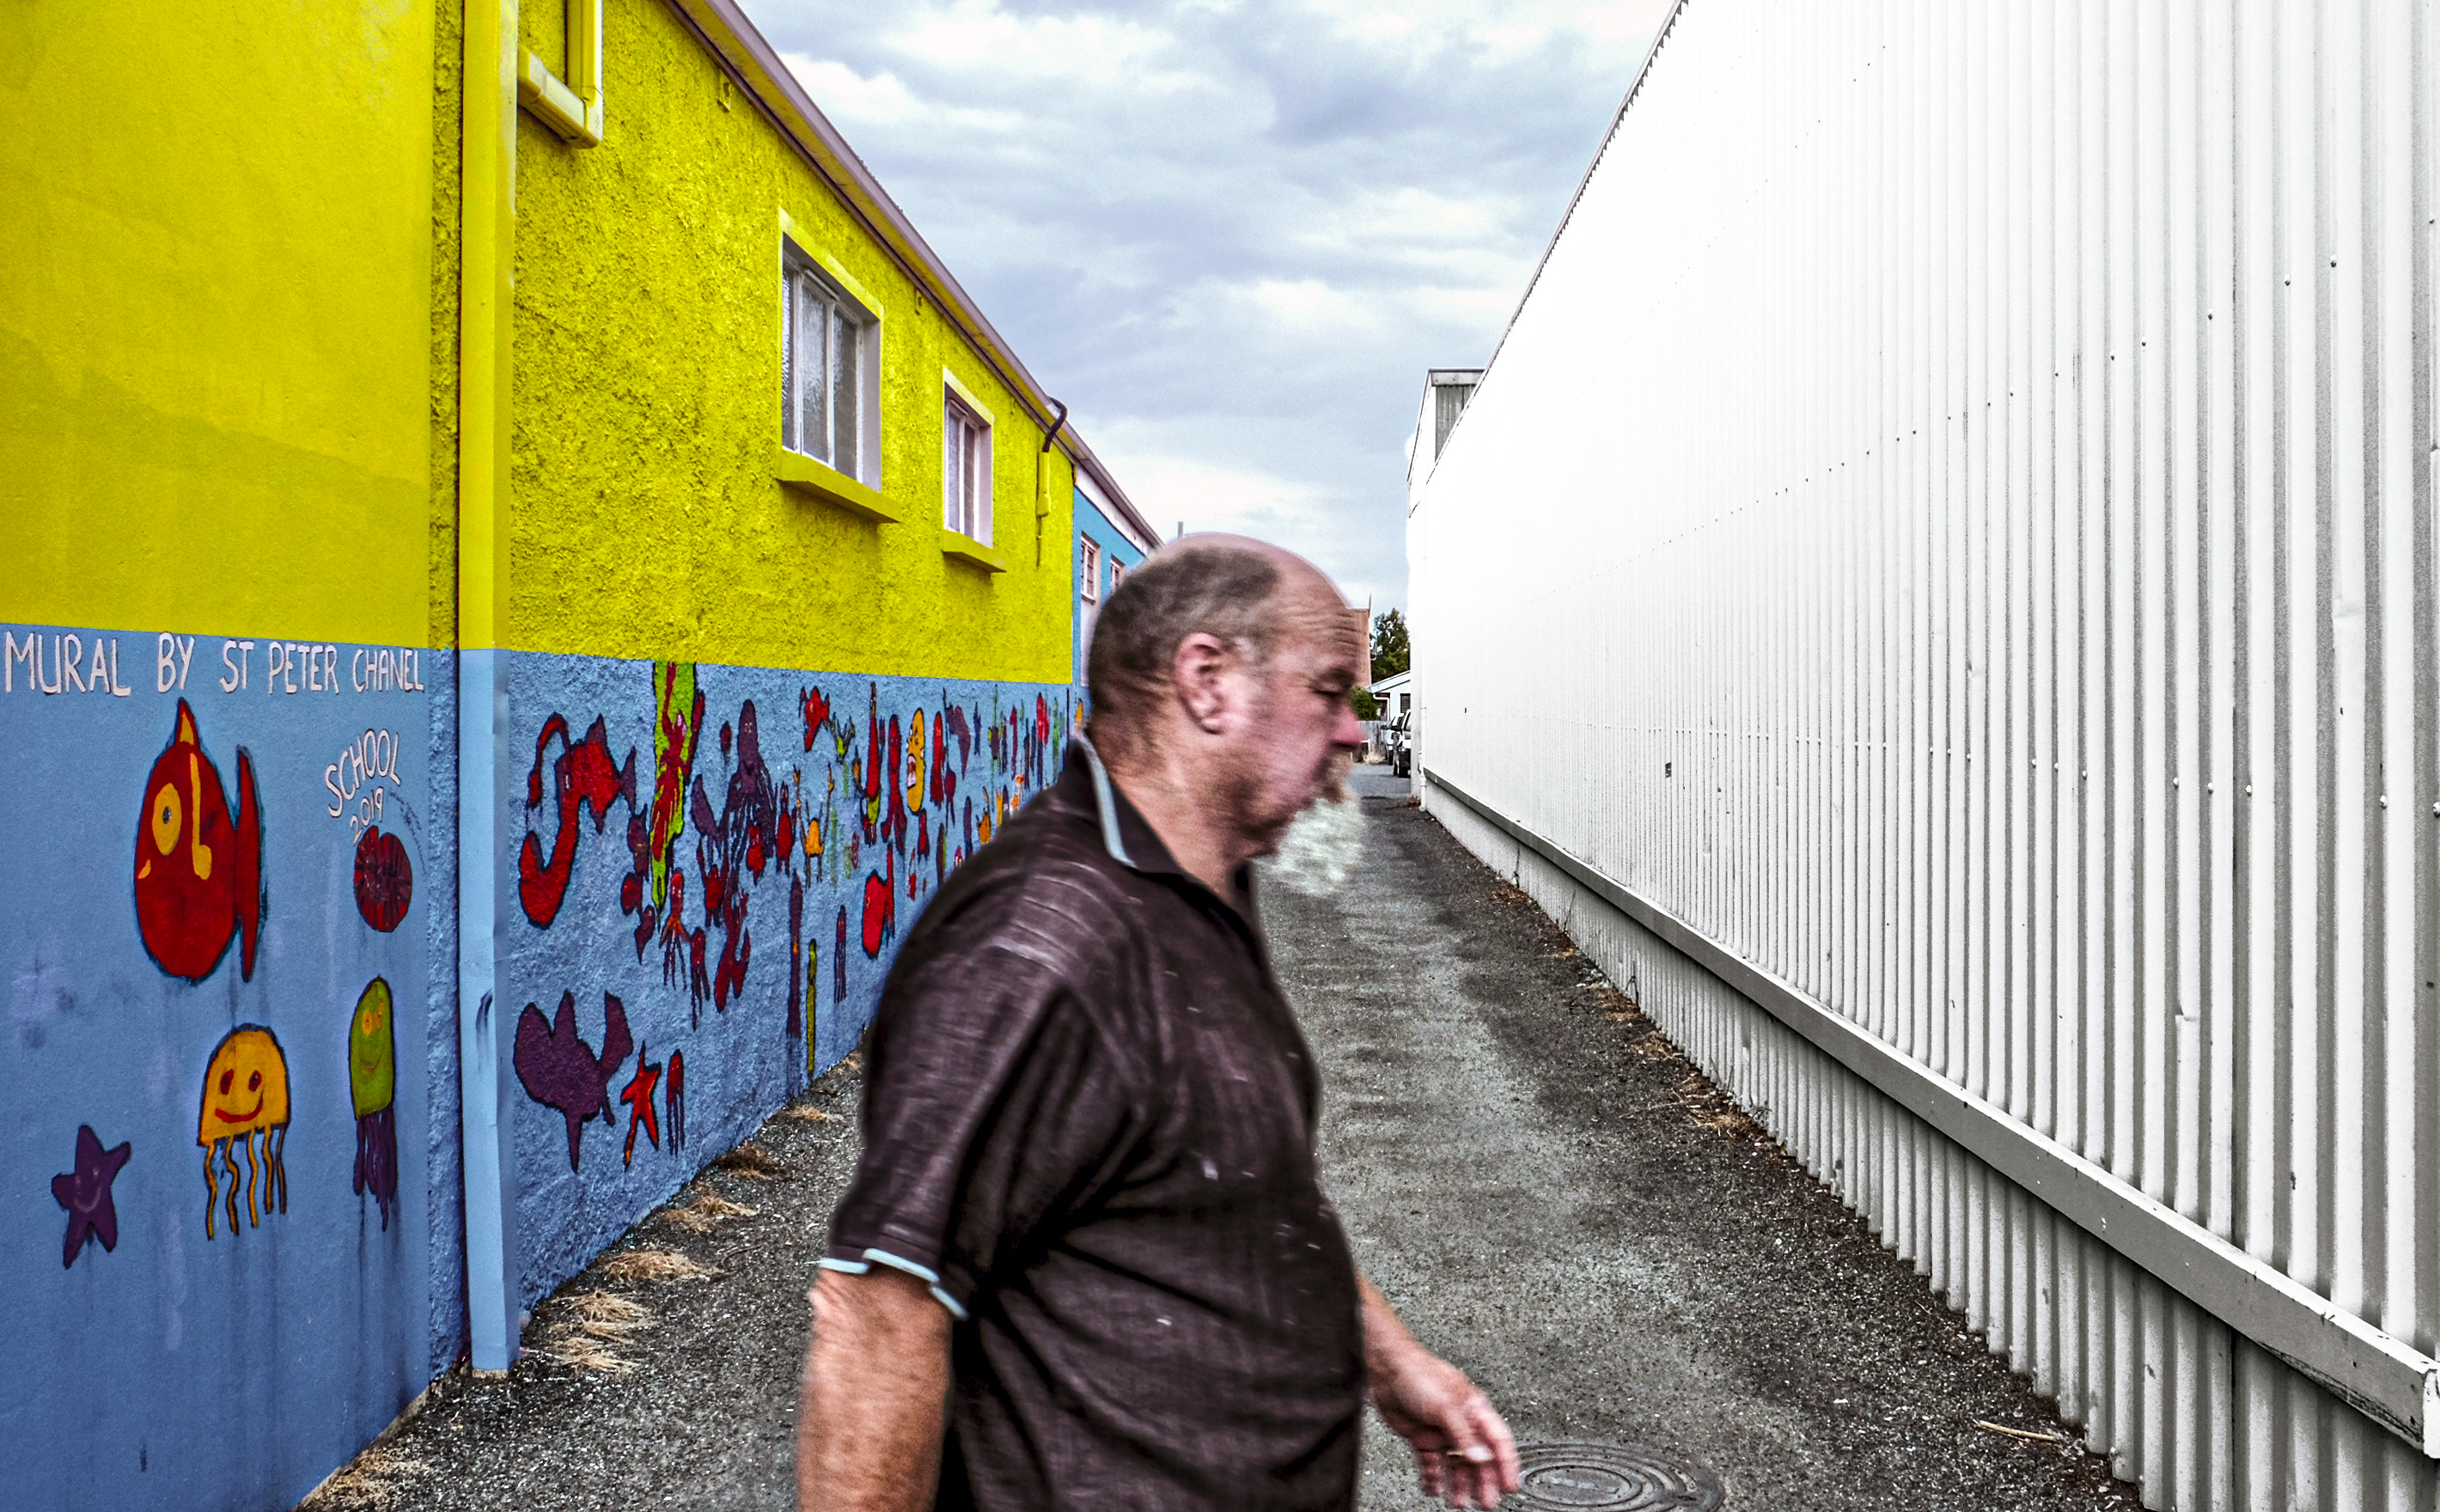 New Zealand_Mural sandwiched man_DEC 201